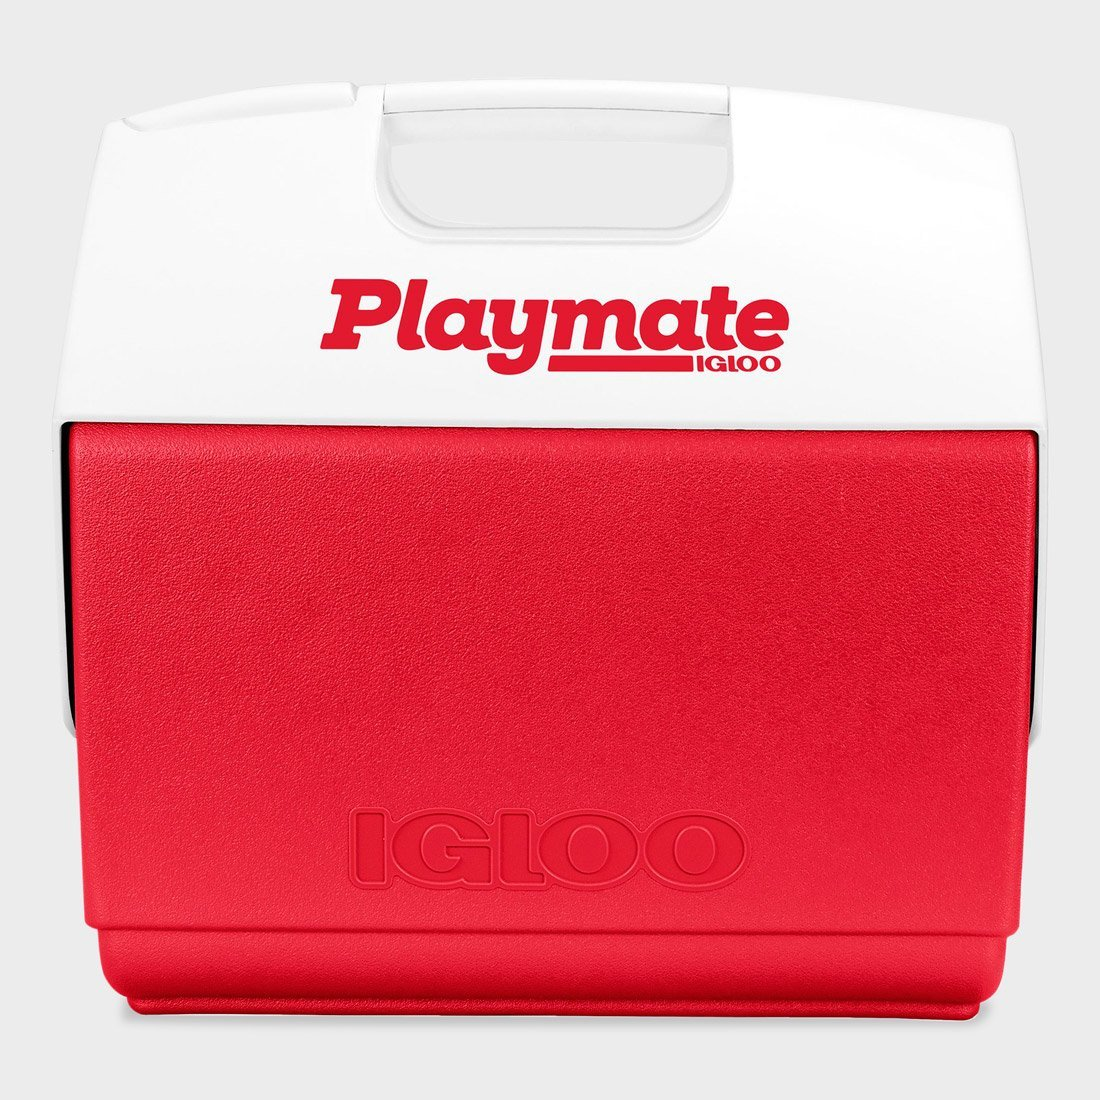 Igloo Playmate Elite 16QT Cooler Red/White